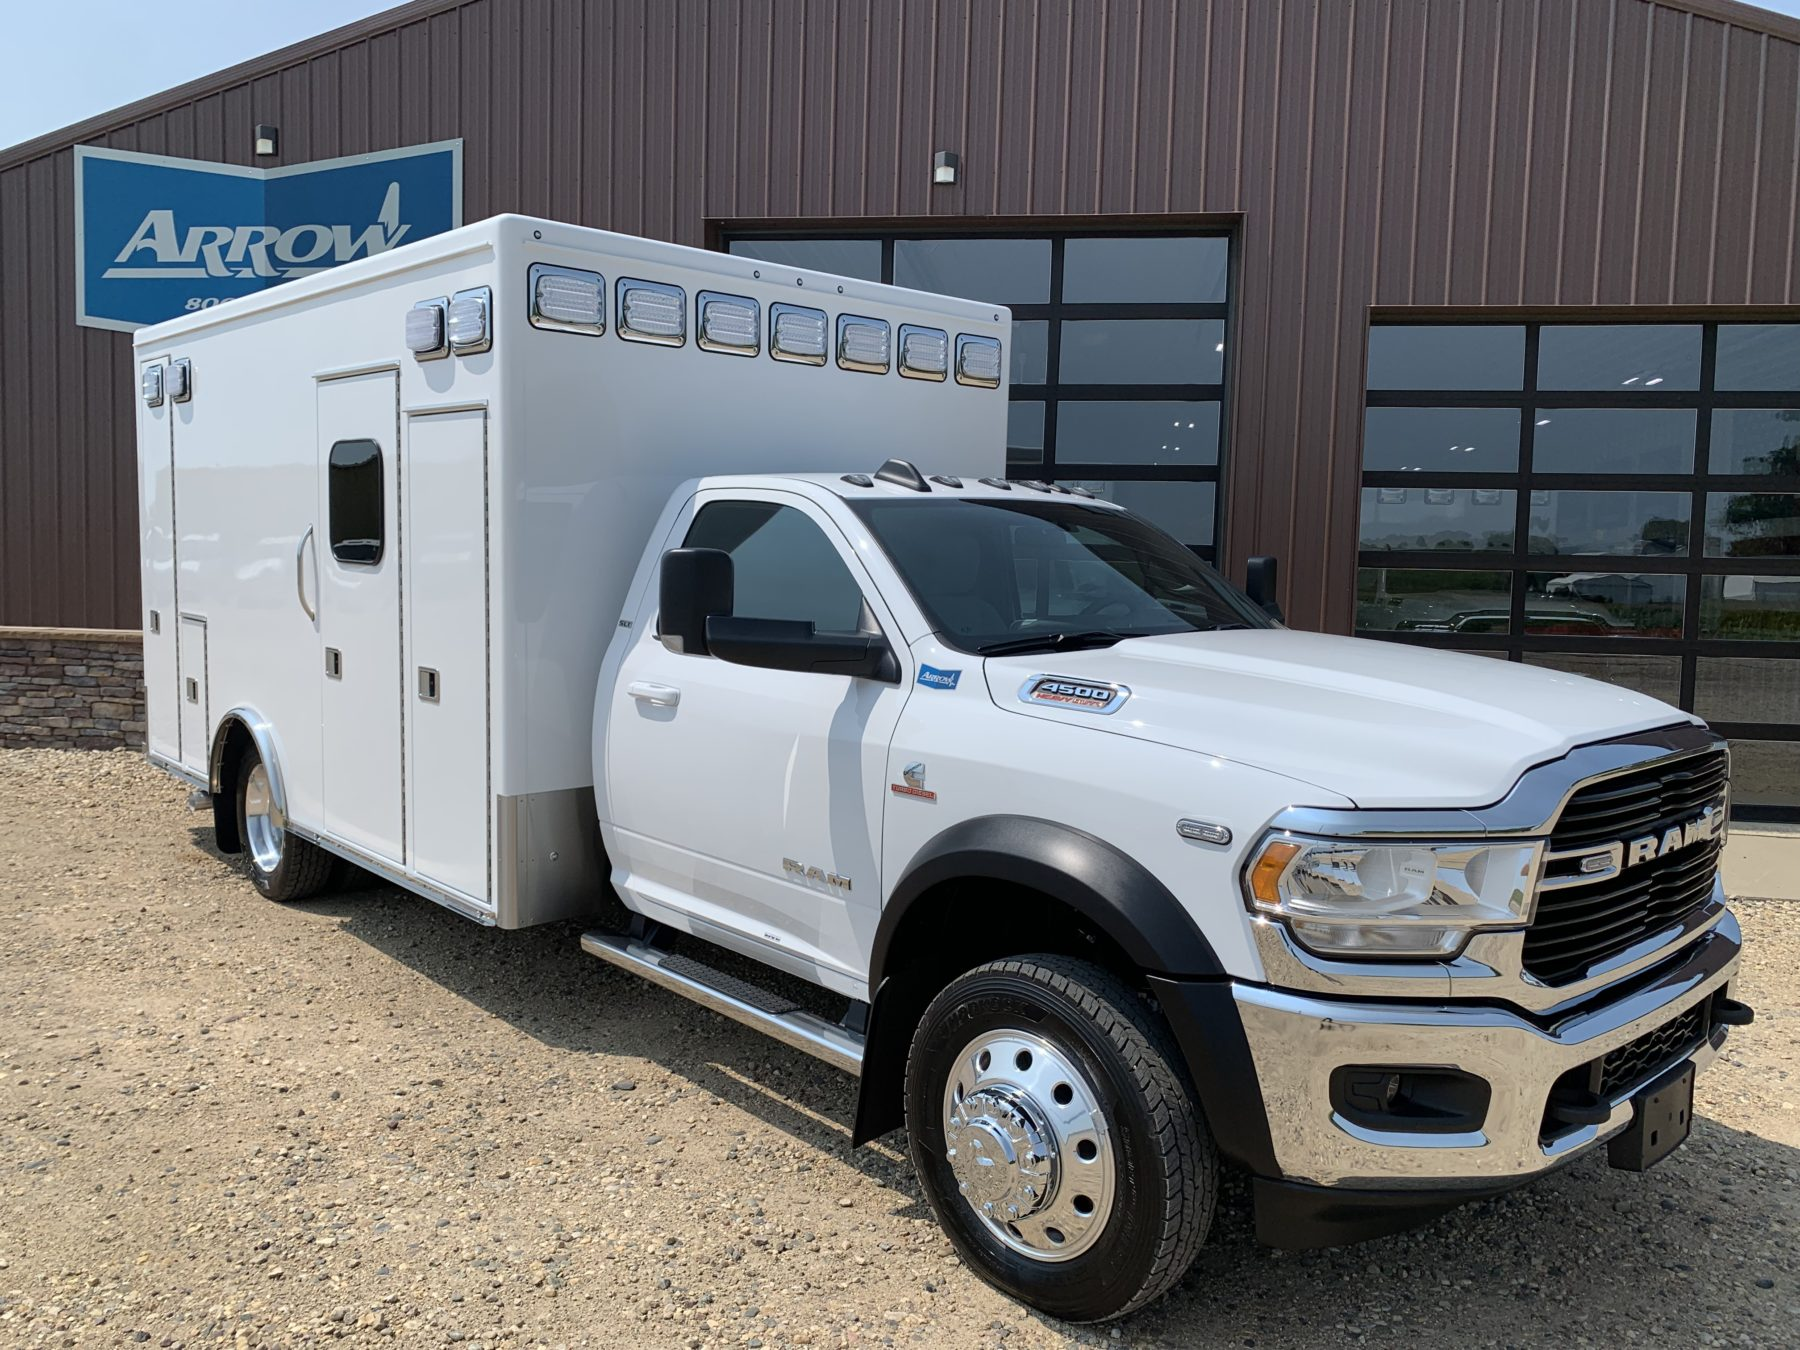 2021 Ram 4500 4x4 Heavy Duty Ambulance For Sale – Picture 4